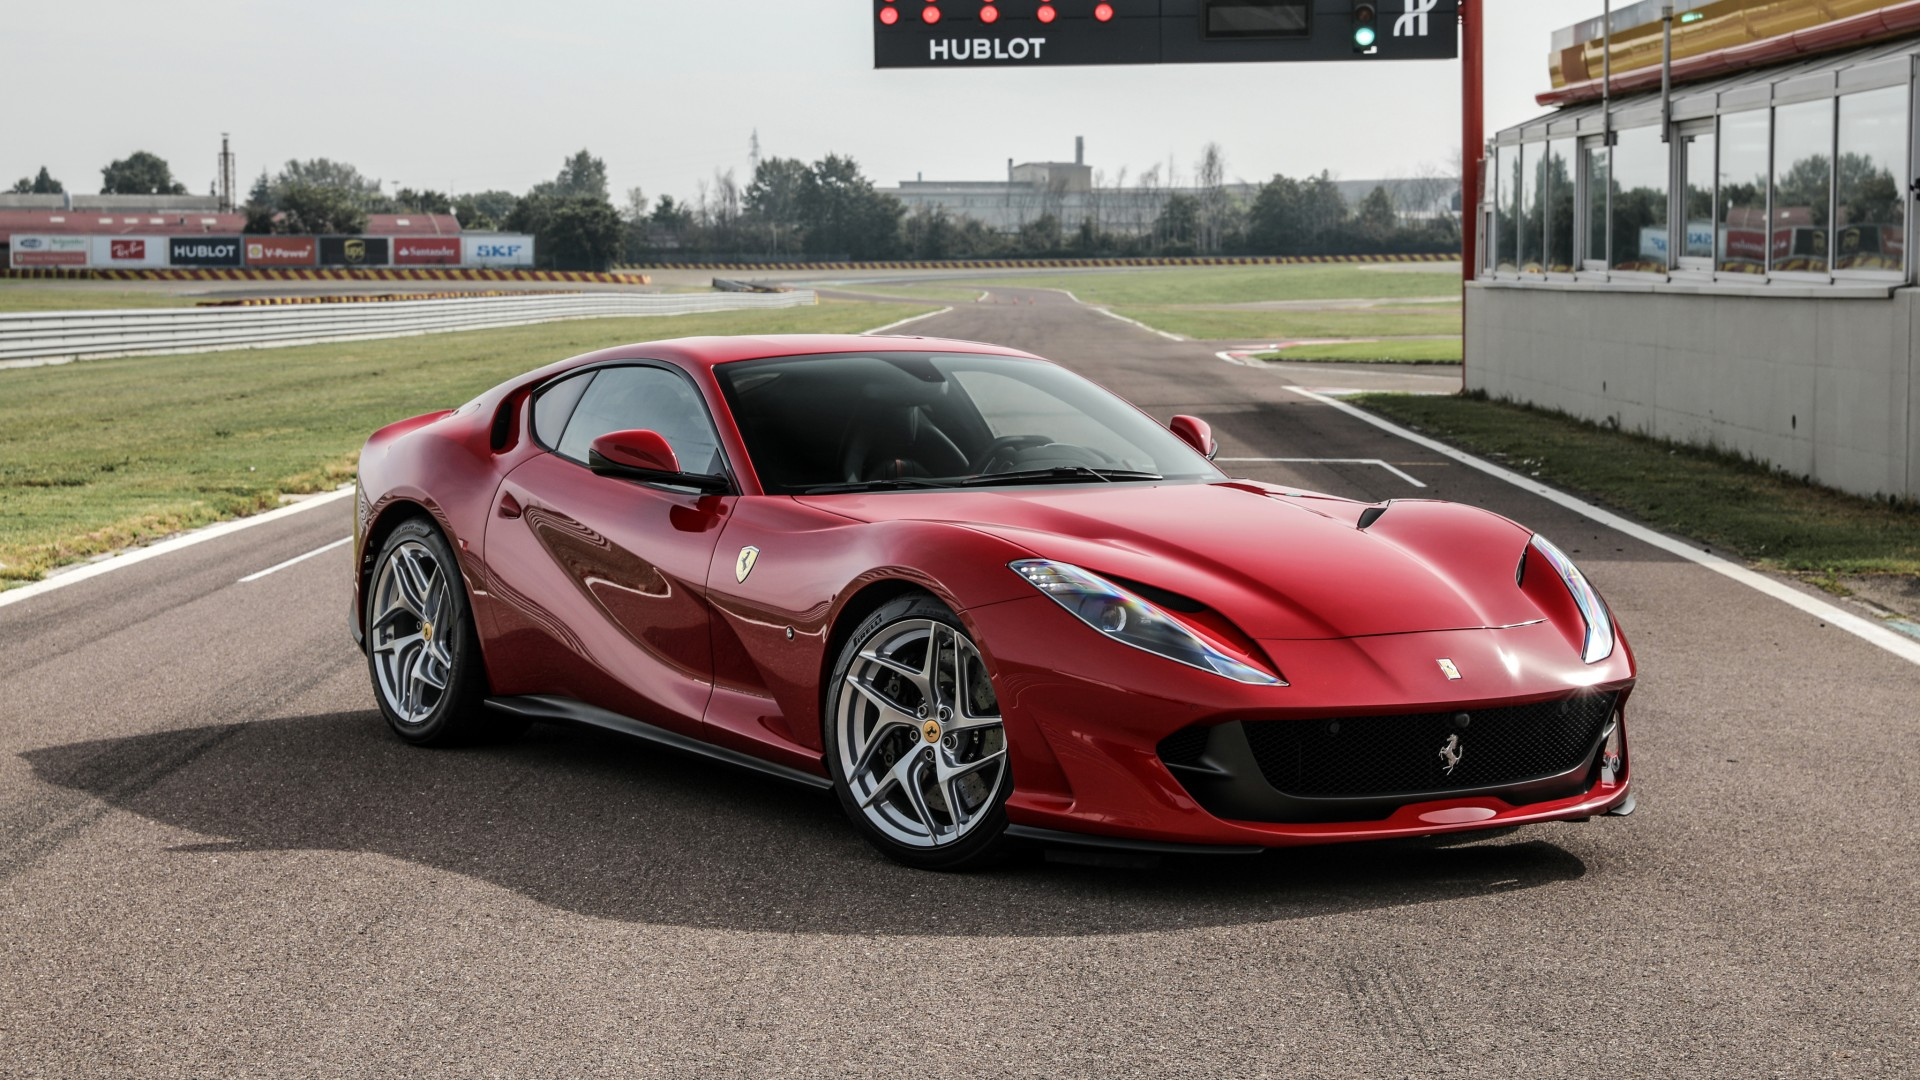 Ferrari 812 Superfast 2017 4K Wallpaper | HD Car ...